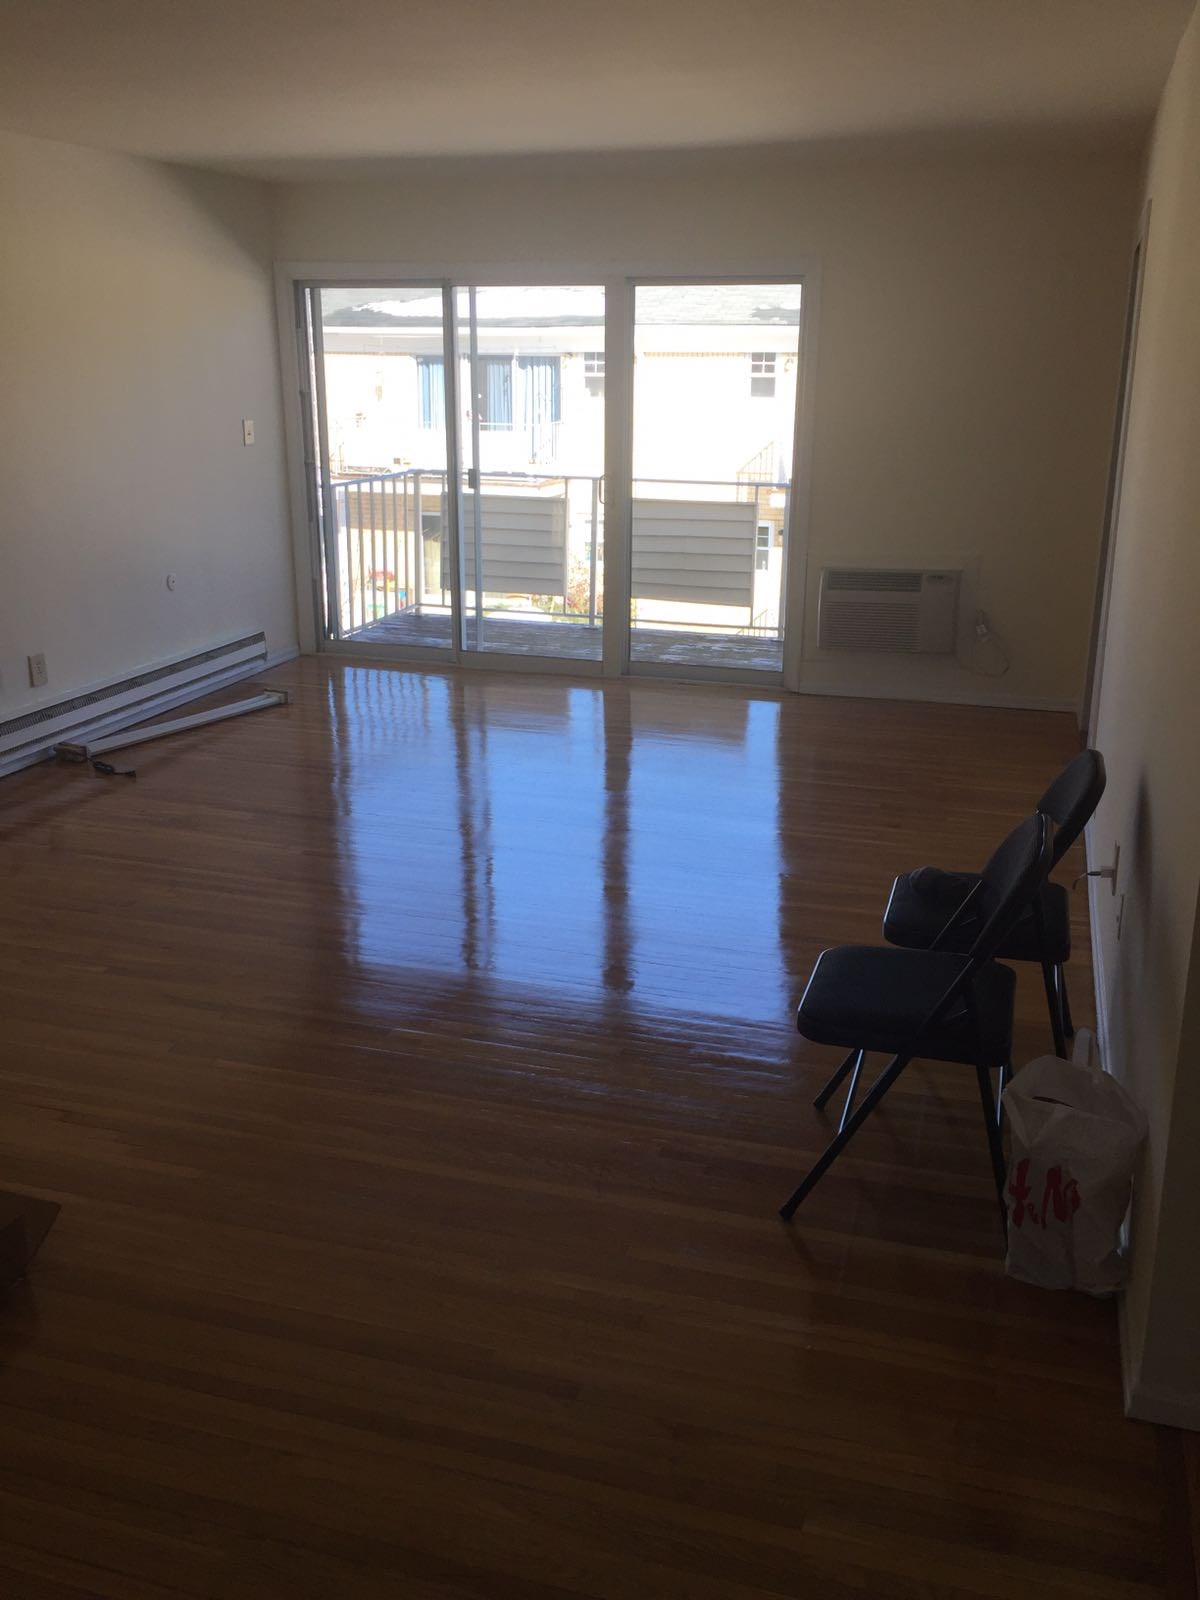 Apt Available For Short Long Duration In Ocean Township Asbury Park